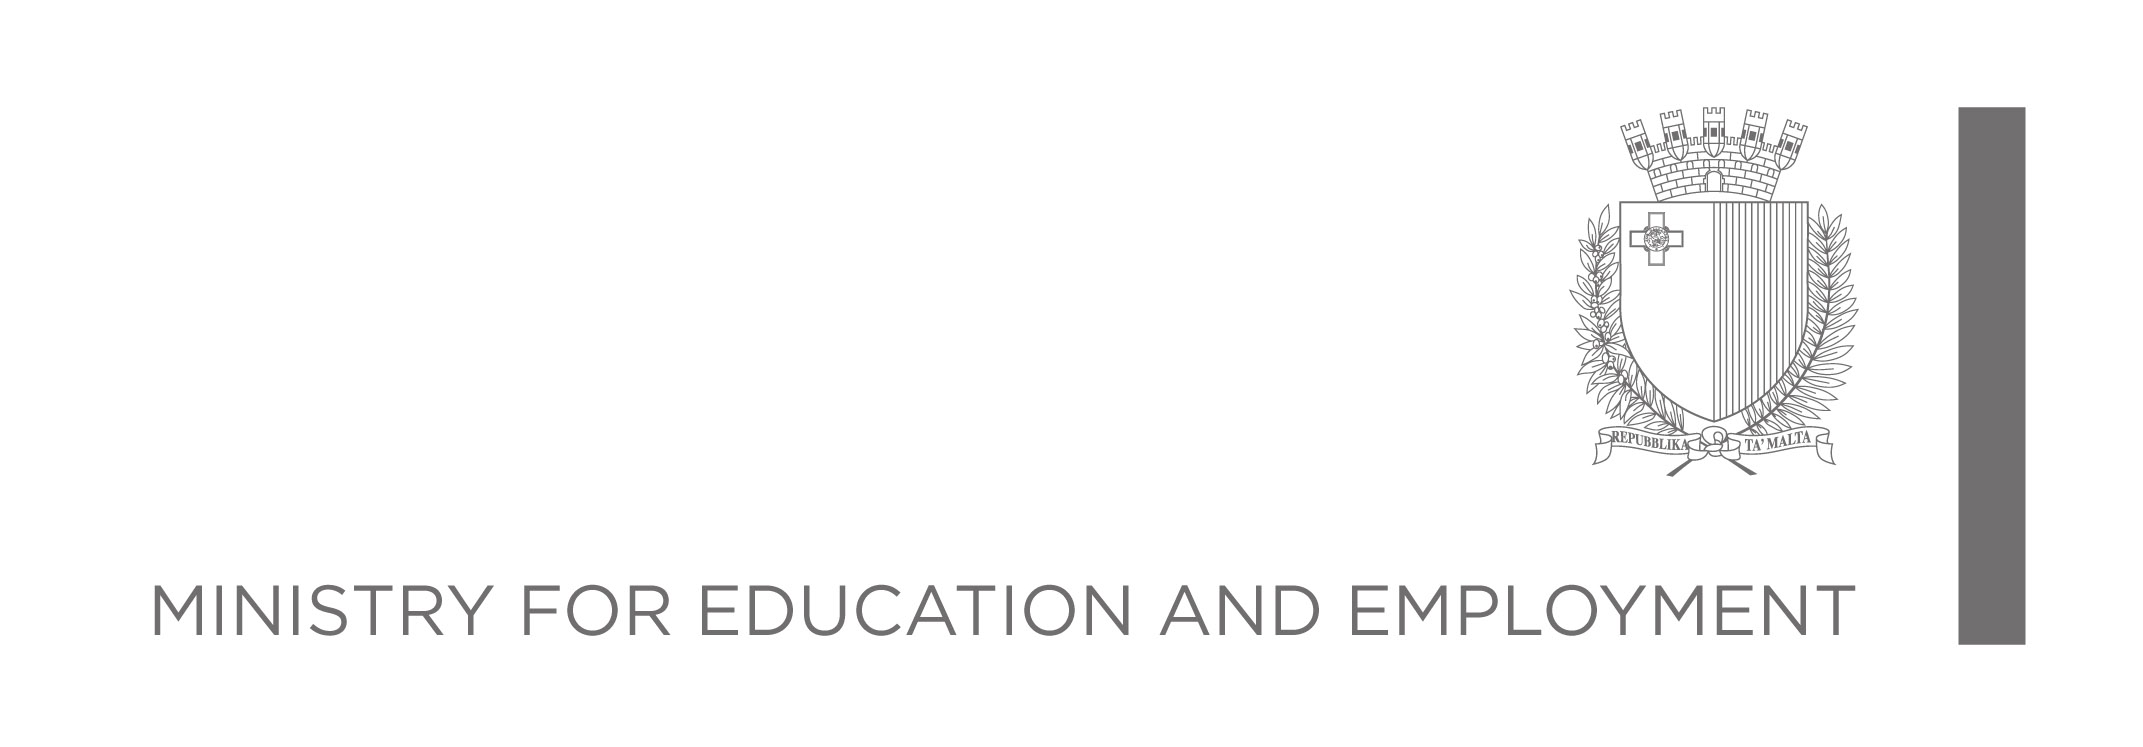 The Ministry for Education and Employment